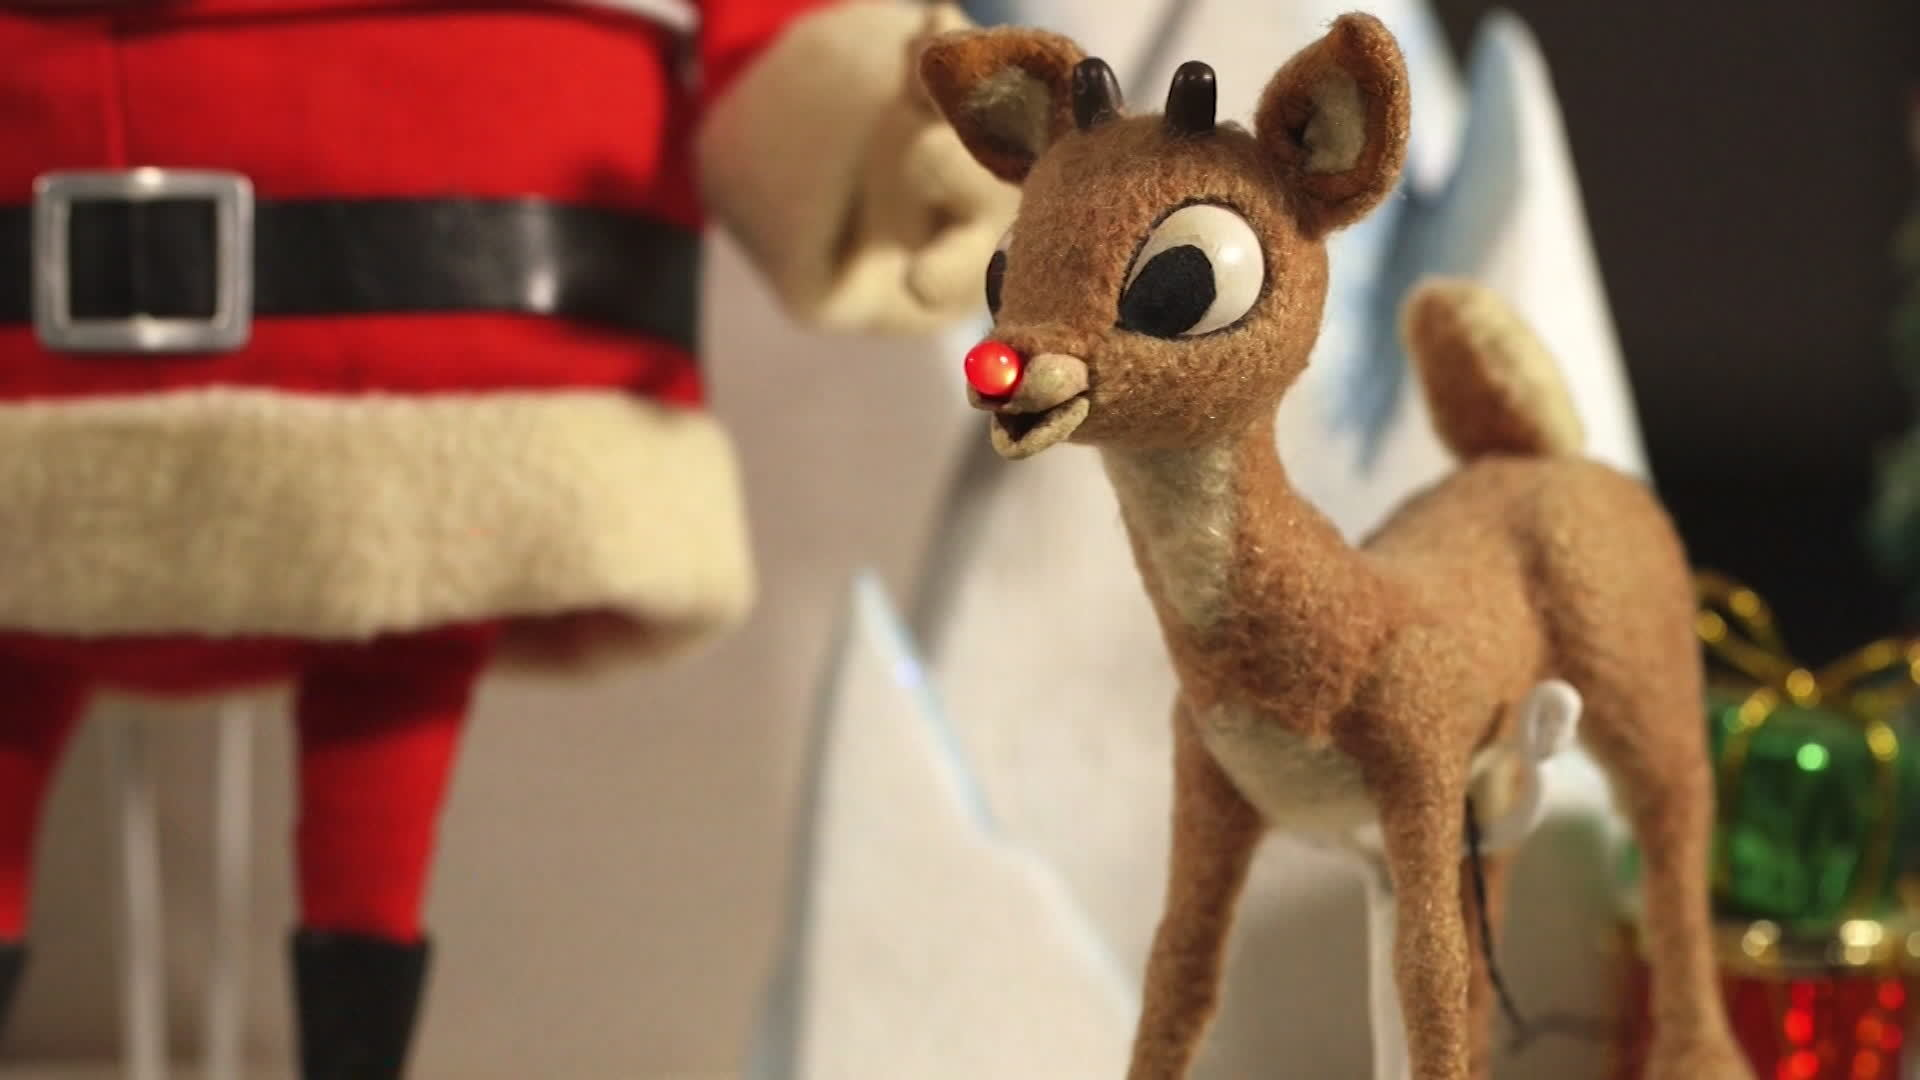 We regret to inform you that rudolph the red